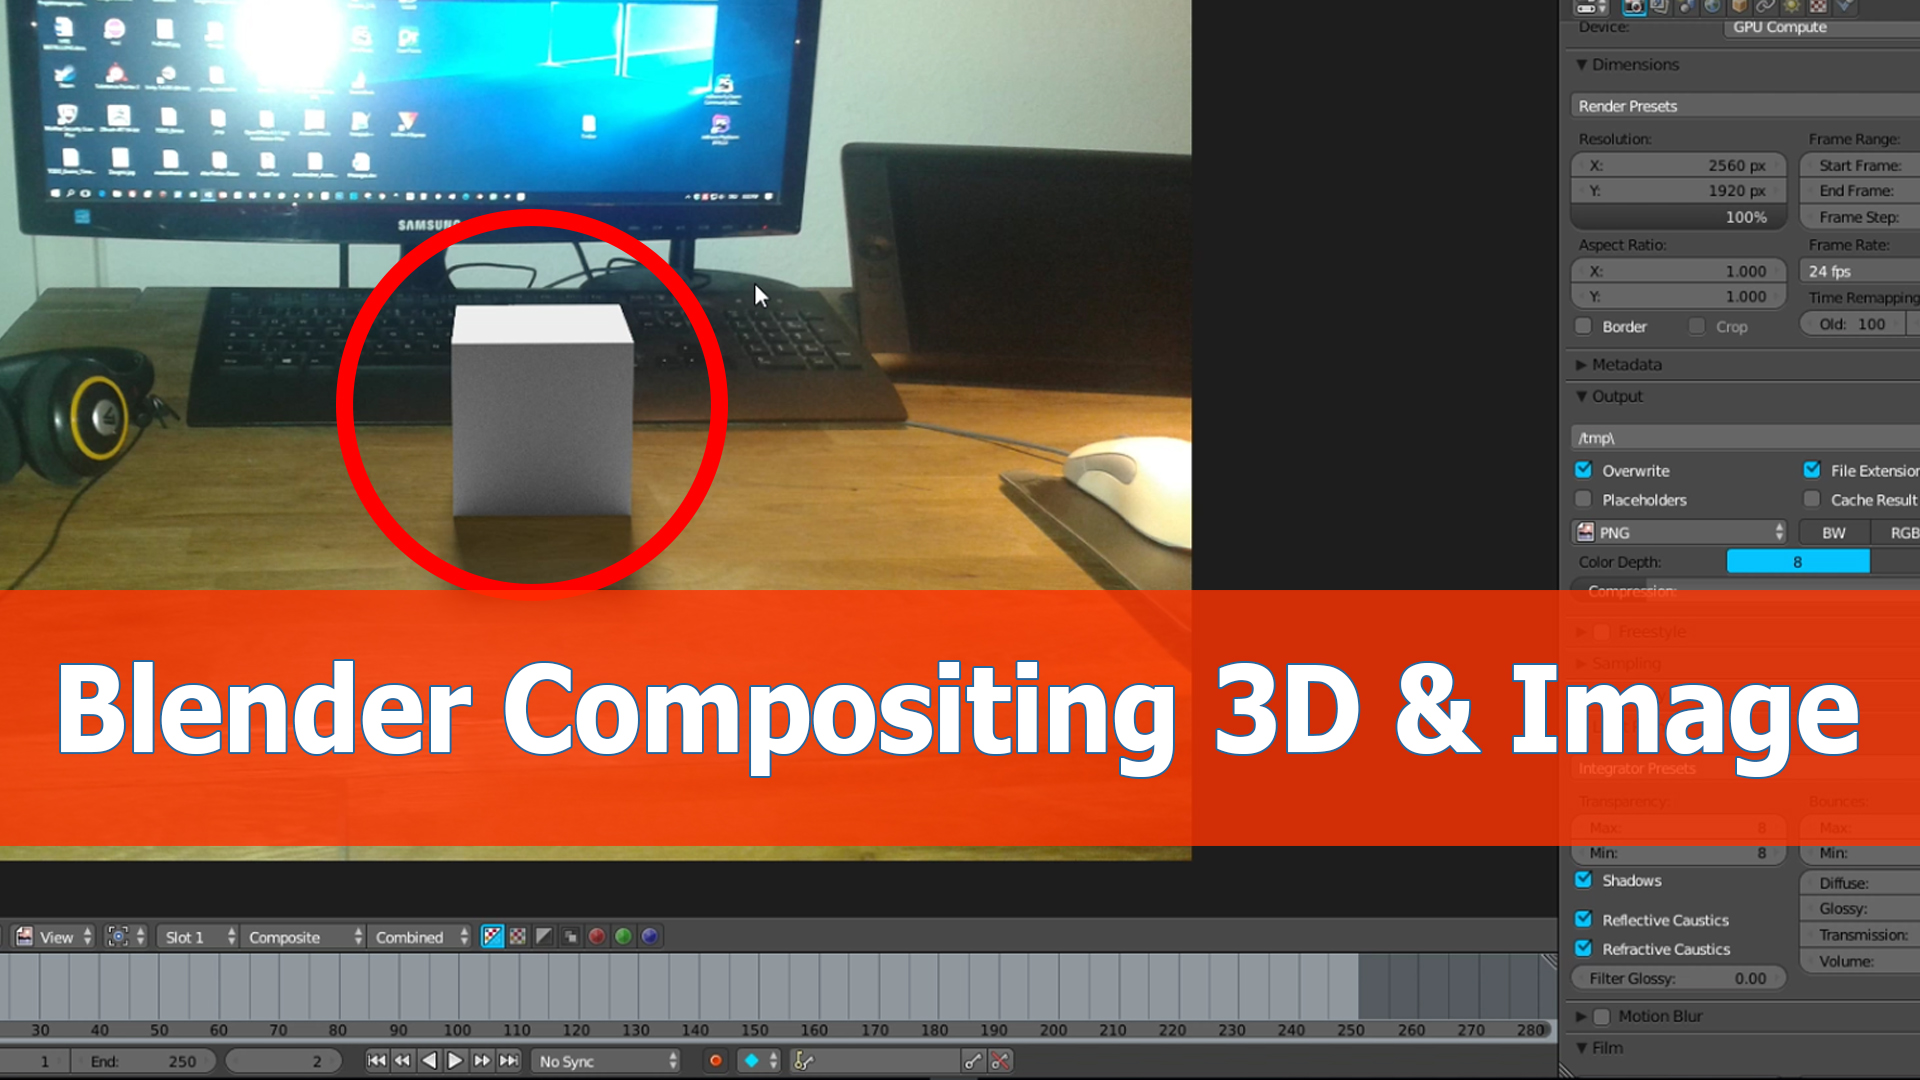 Blender compositor tutorial: Image and 3D objects - BlenderNation